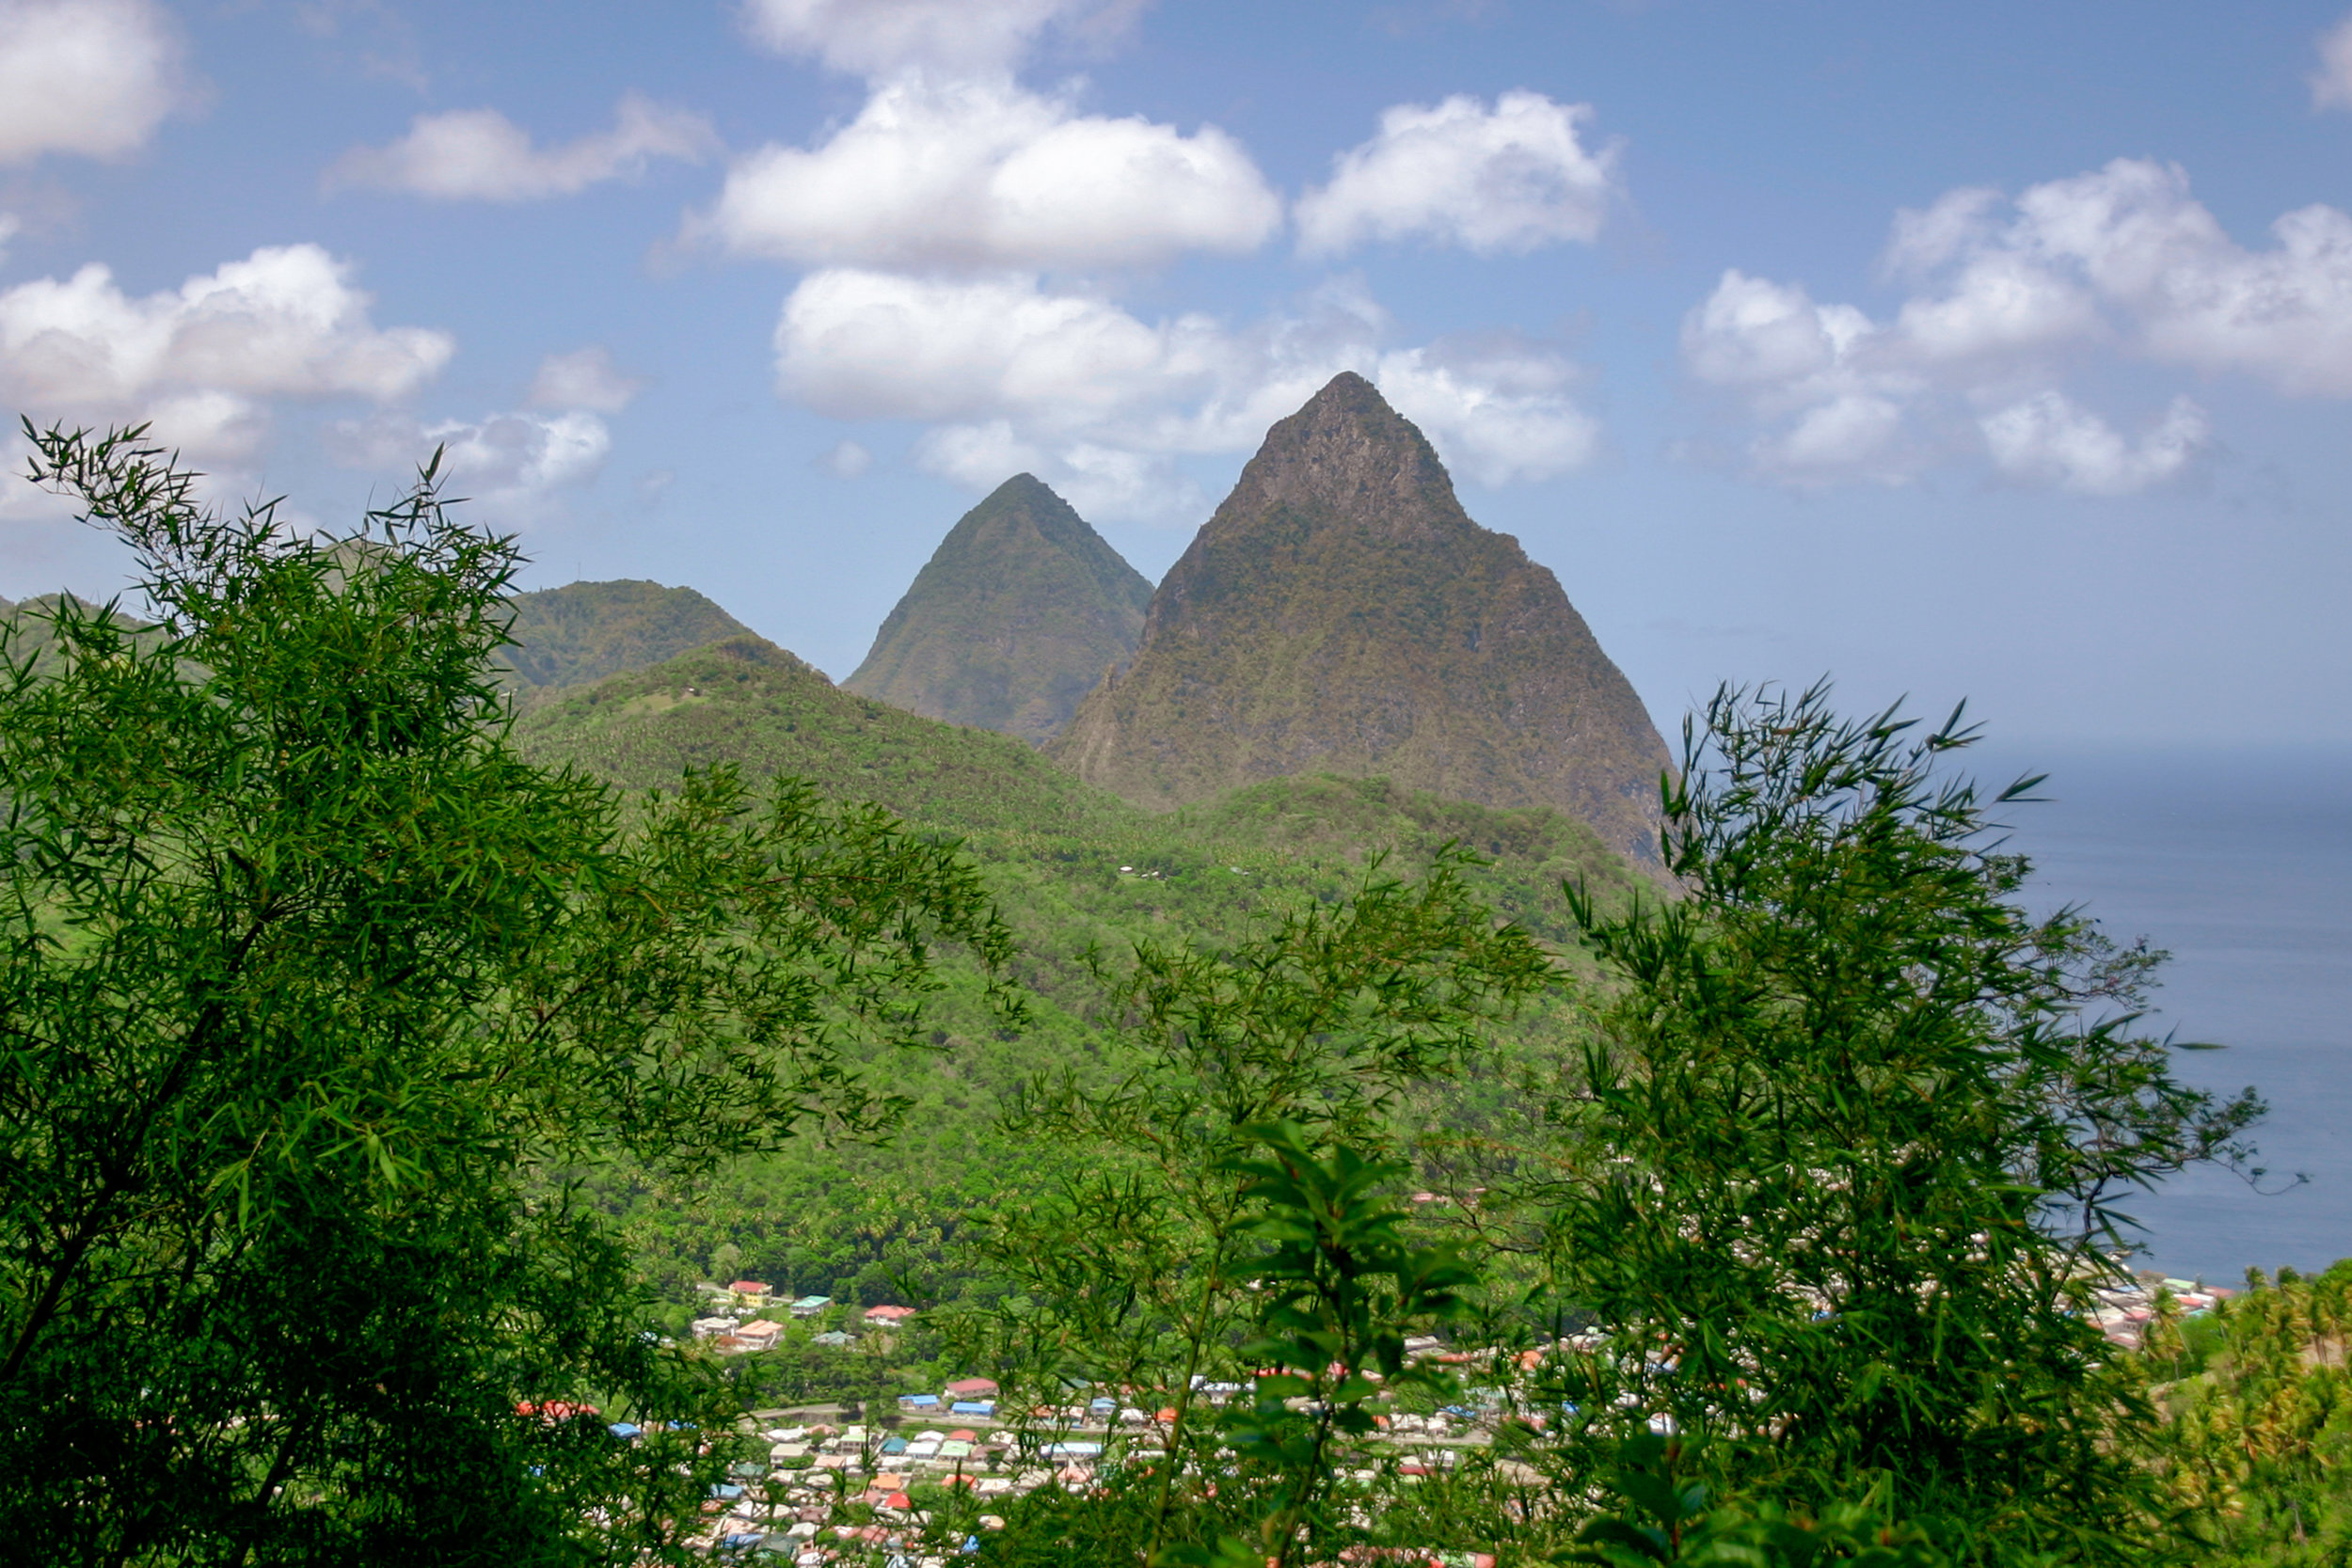 bigstock-The-Scenic-Pitons-Mountains-In-281654575.jpg